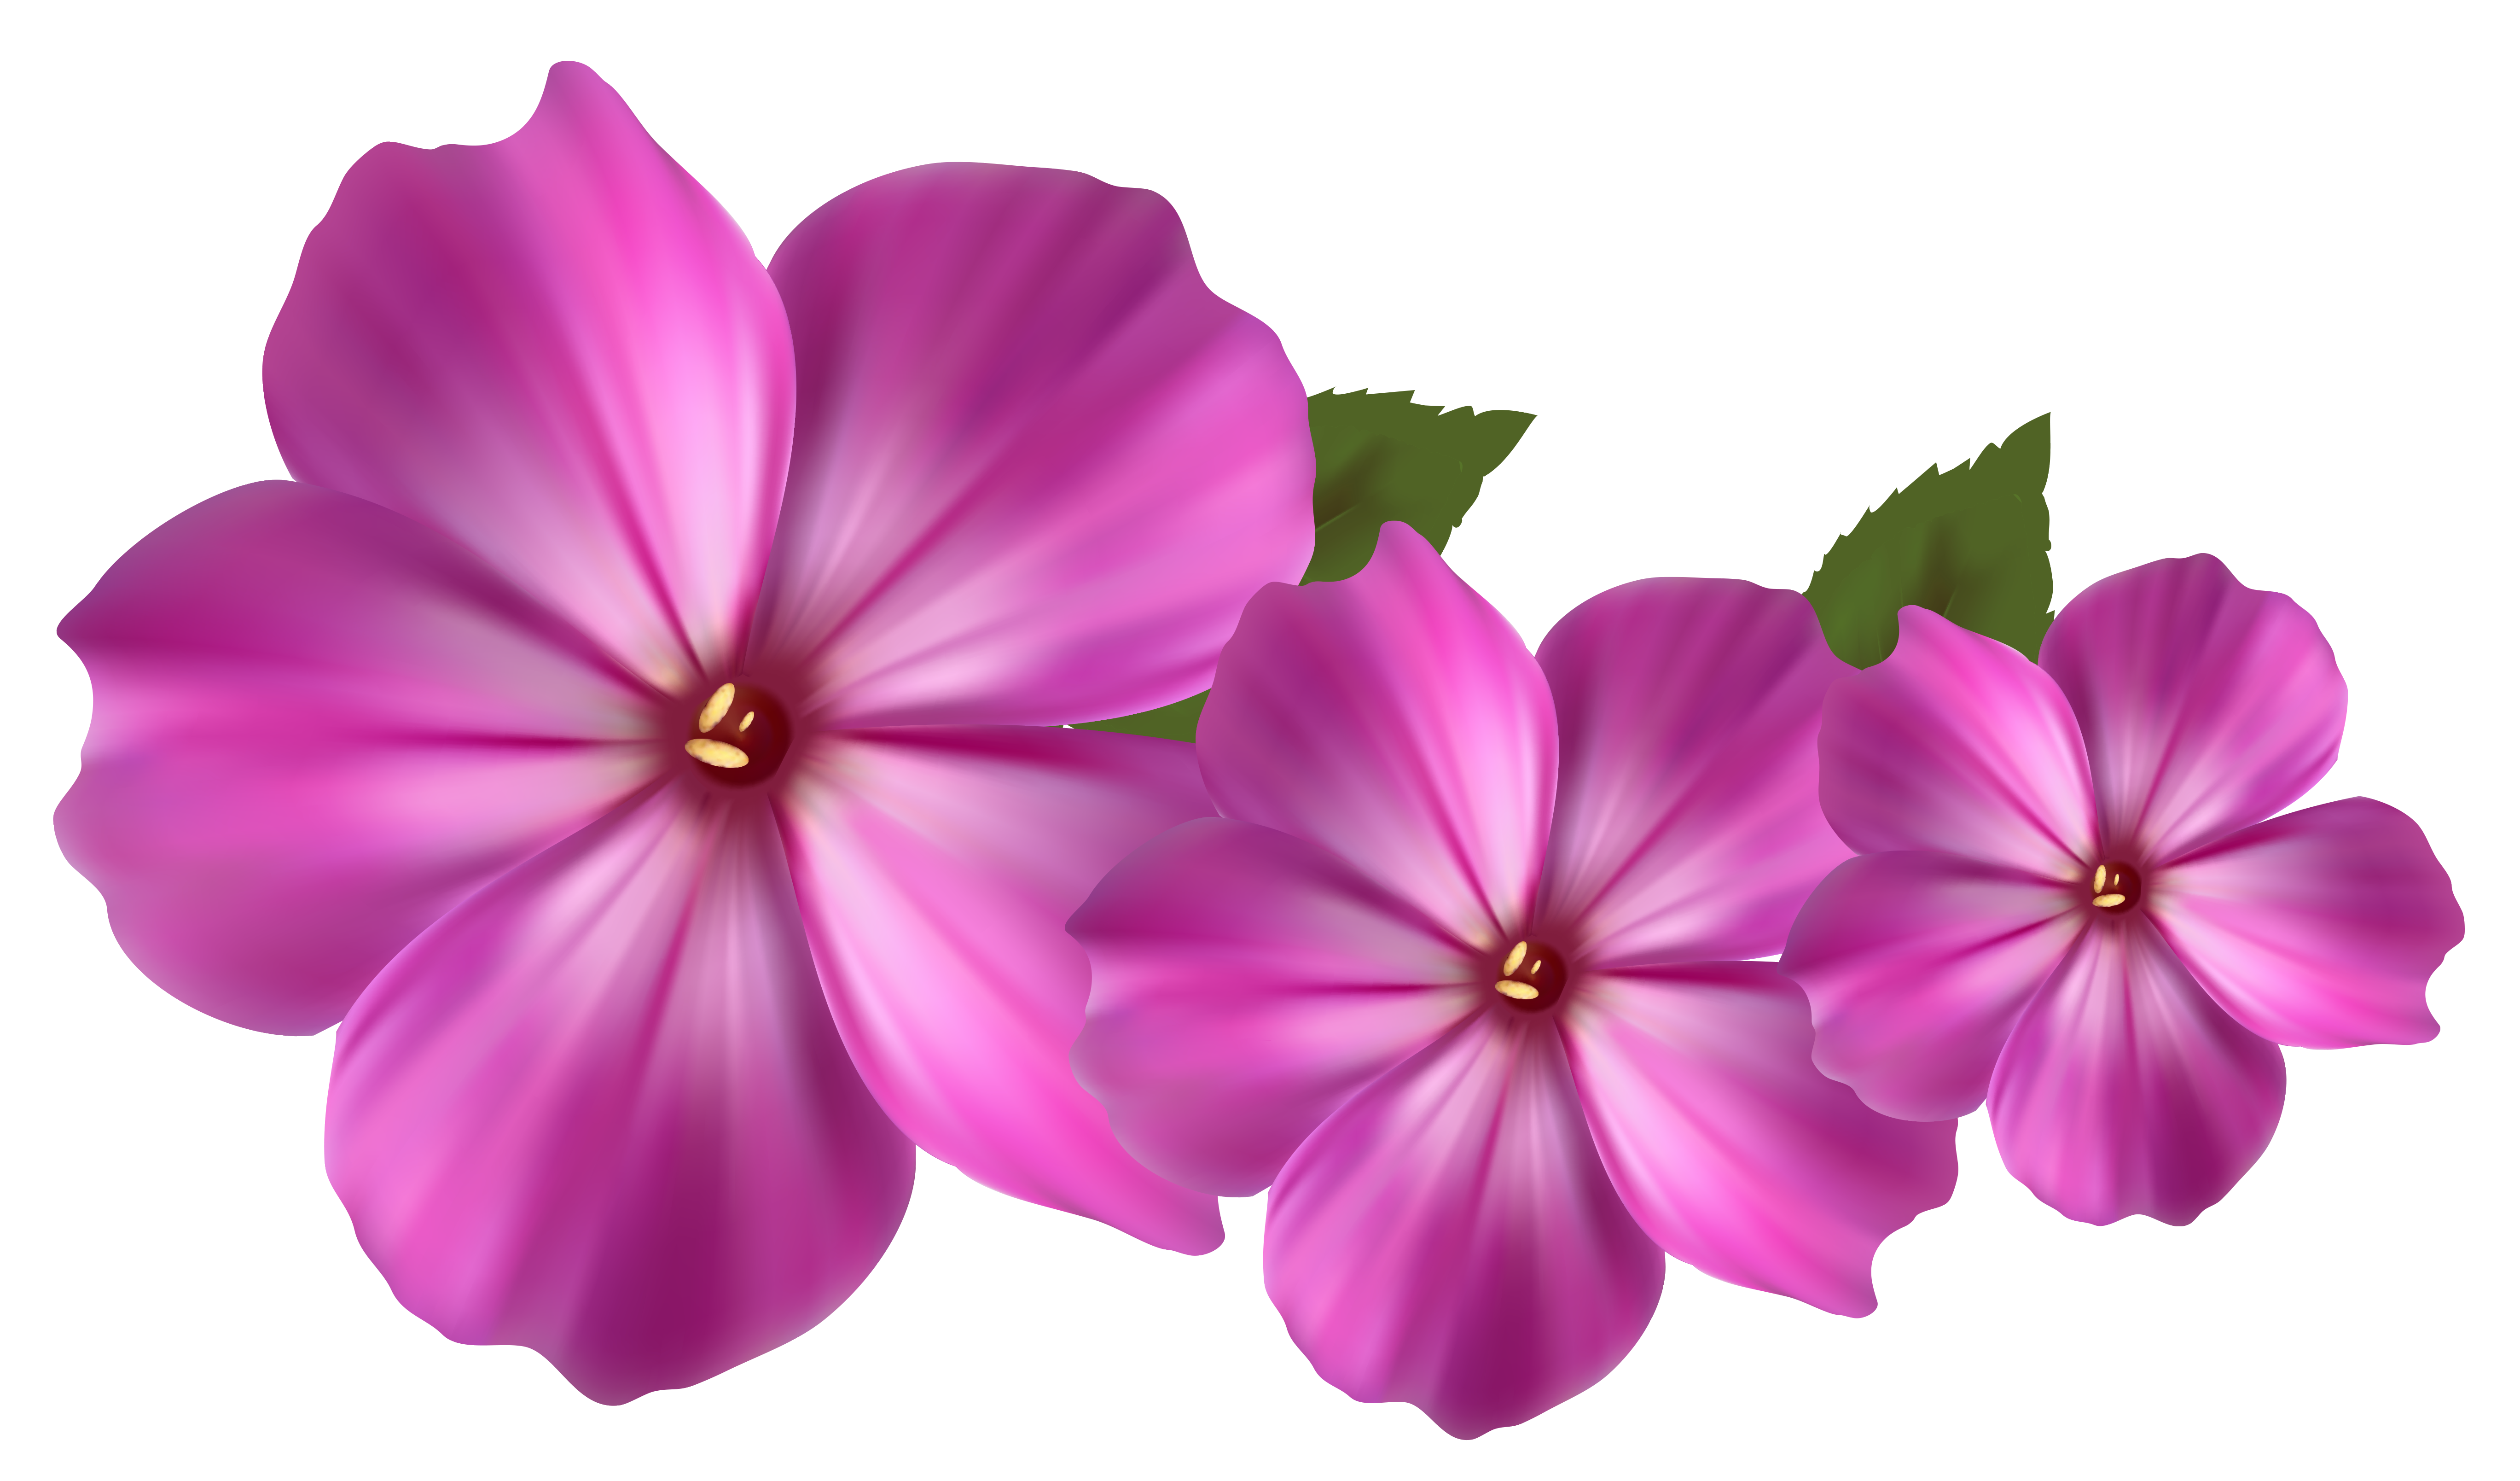 Flowers decor clipart #13